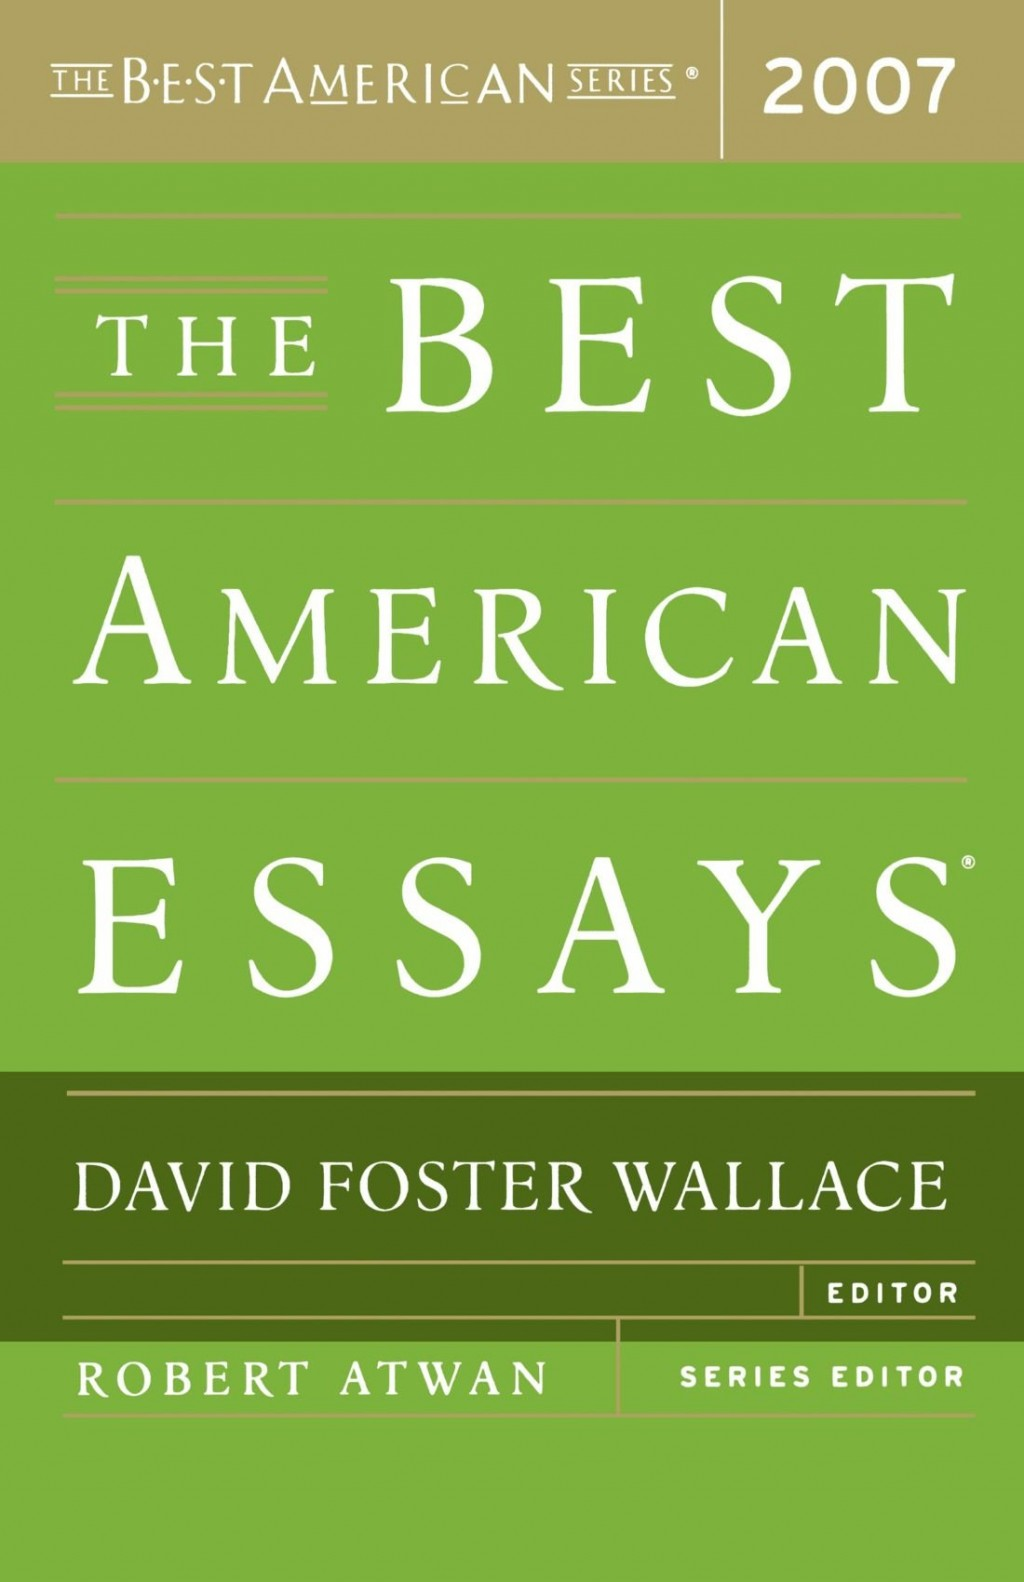 002 Essay Example David Foster Wallace Singular On Television Consider Critical Essays This Is Water Large